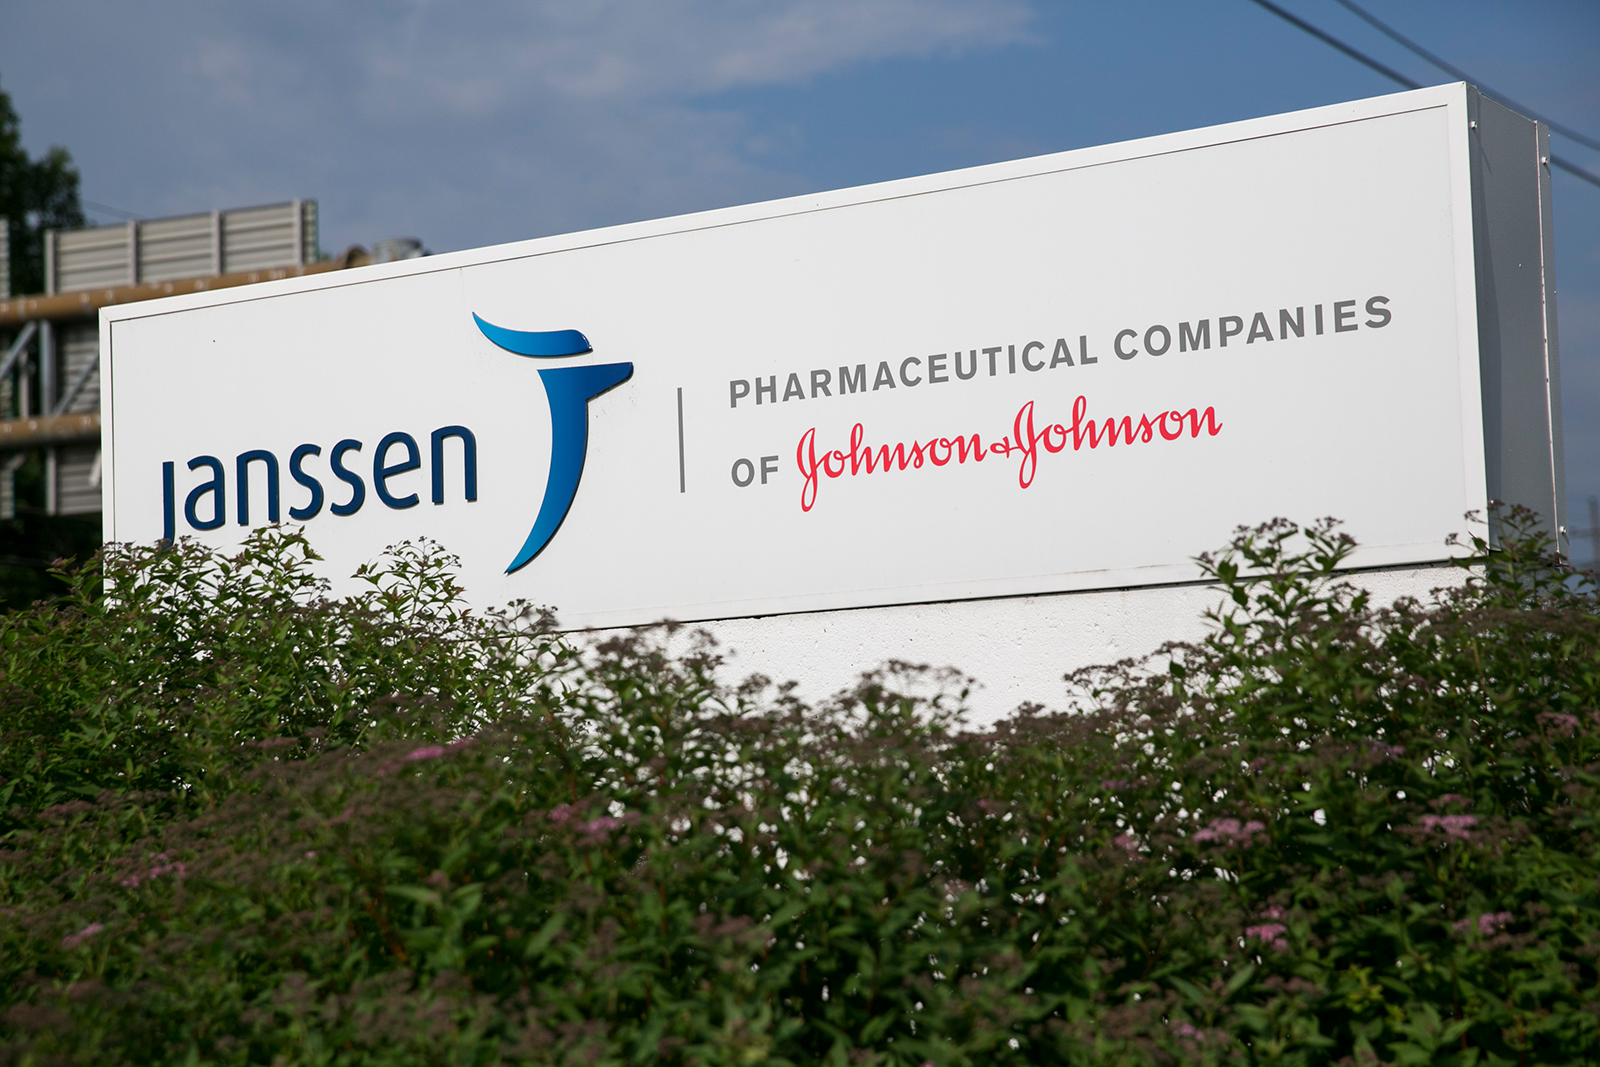 A logo sign outside of facility occupied by Janssen Pharmaceuticals, a subsidiary of Johnson & Johnson, in Somerville, New Jersey on May 31, 2015.